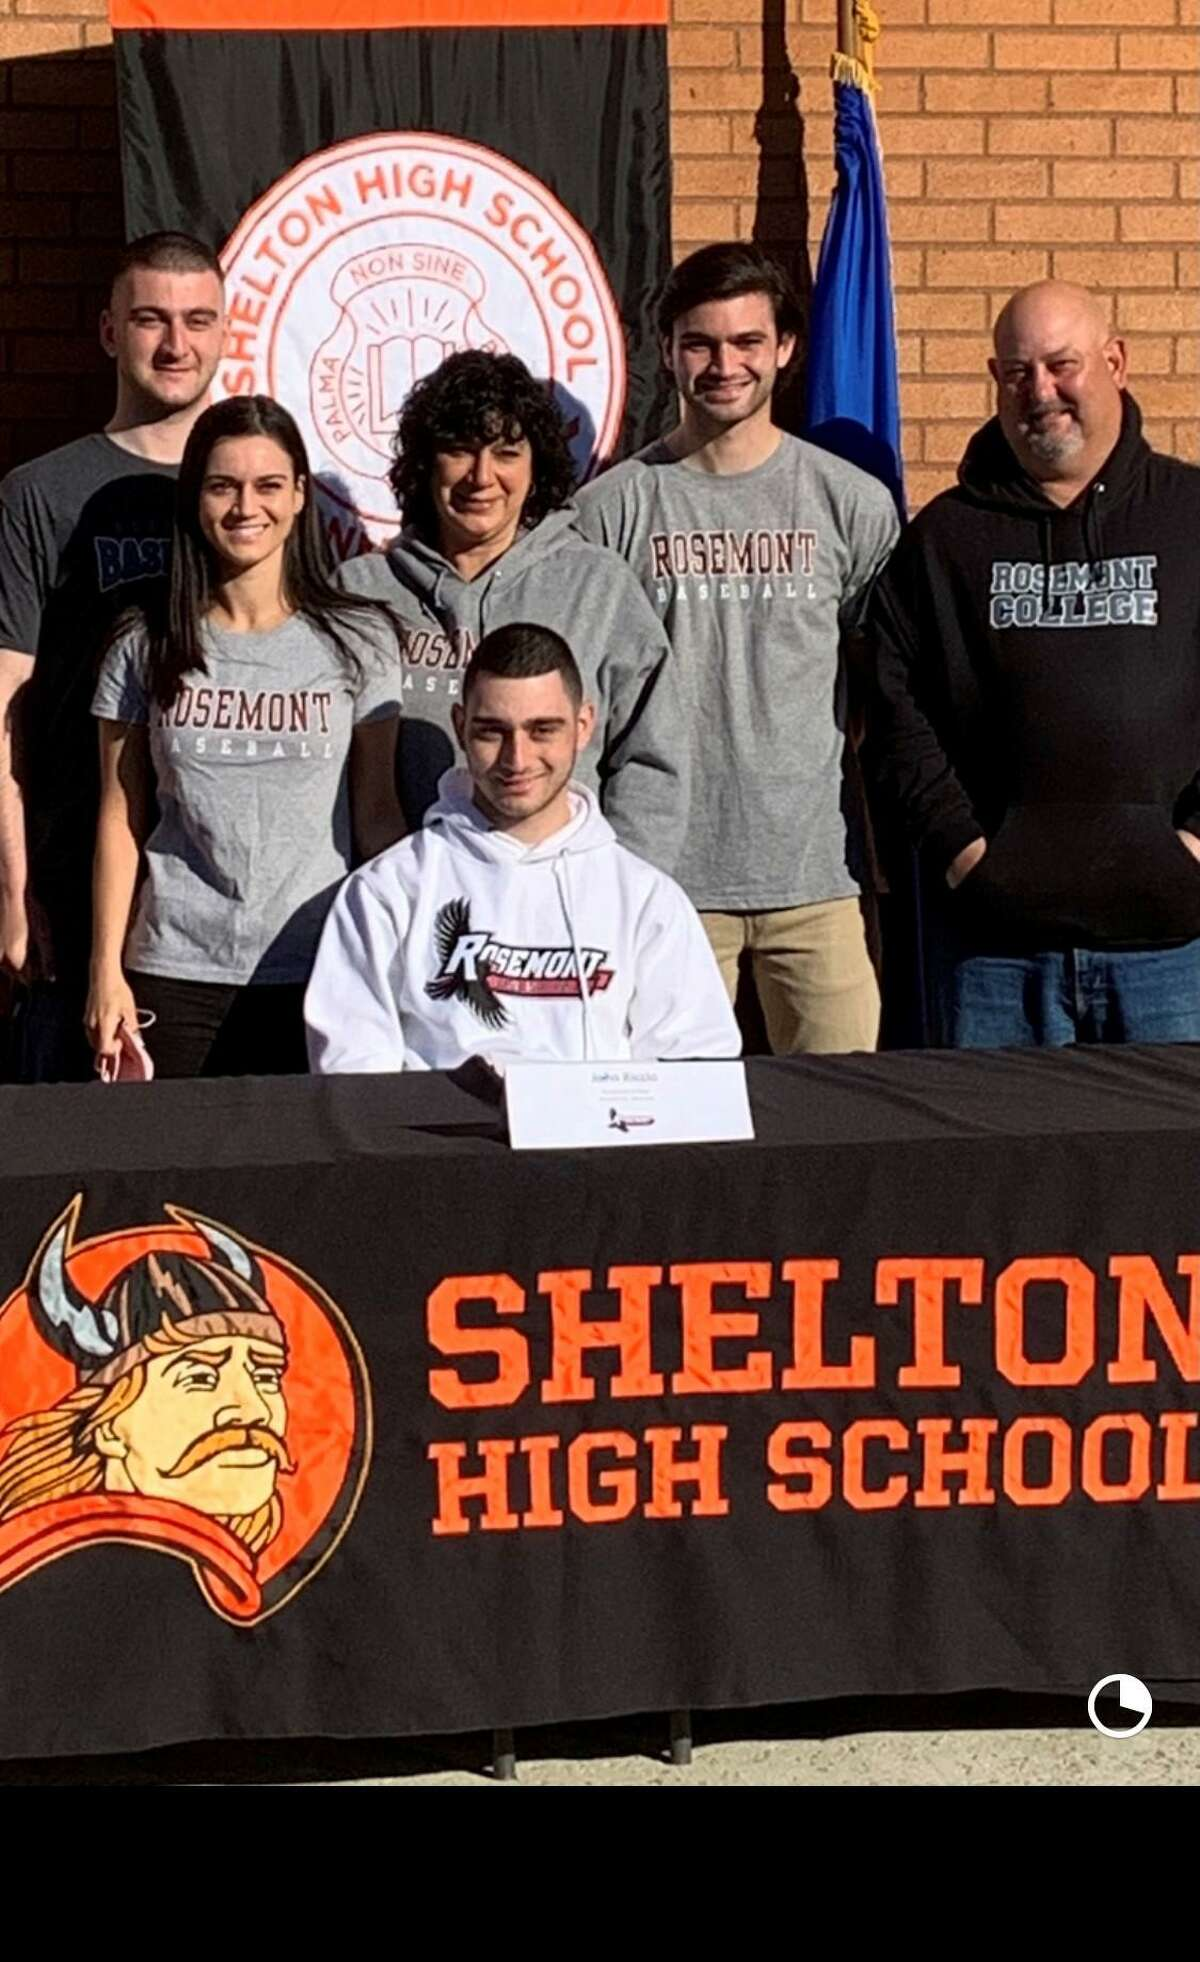 John Riccio signed to play baseball at Rosemont College in Pennsylvania in a ceremony at Shelton High. Joining him were brother Luke, sister Mikayla, mom Lucille, brother Michael and dad Mike.